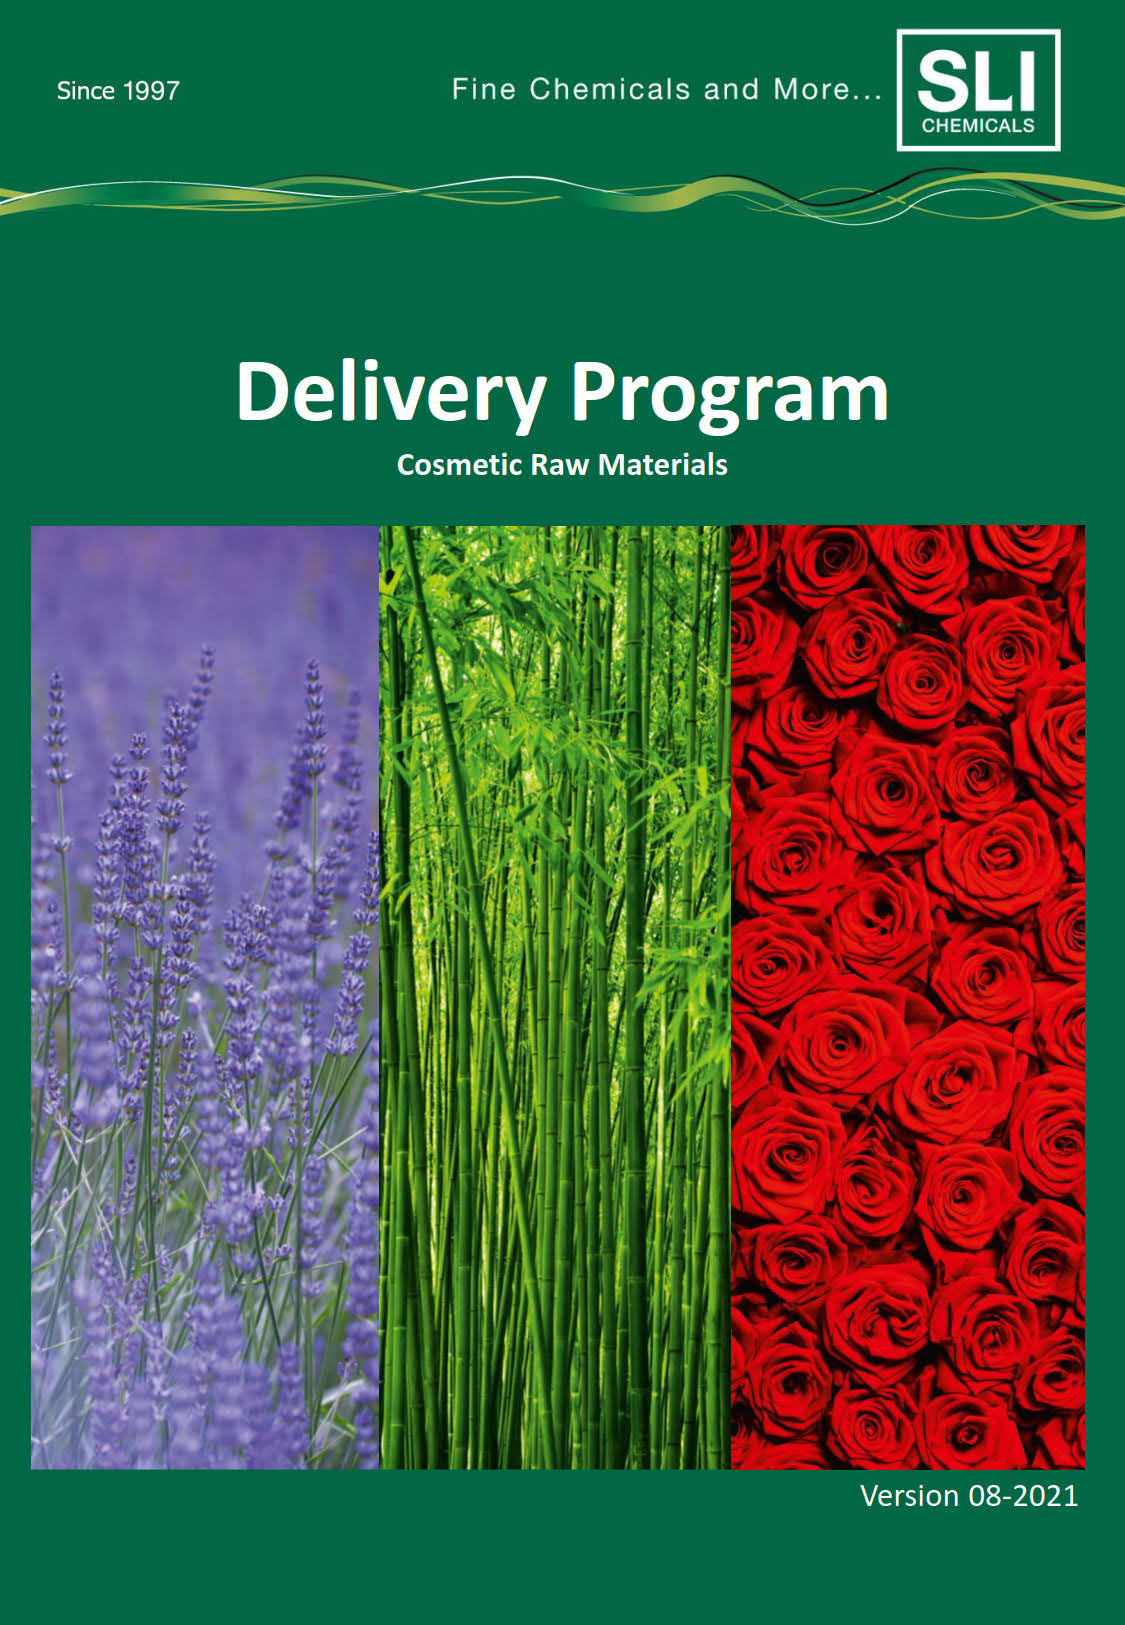 Delivery Program - Cosmetic Raw Materials 06 2019